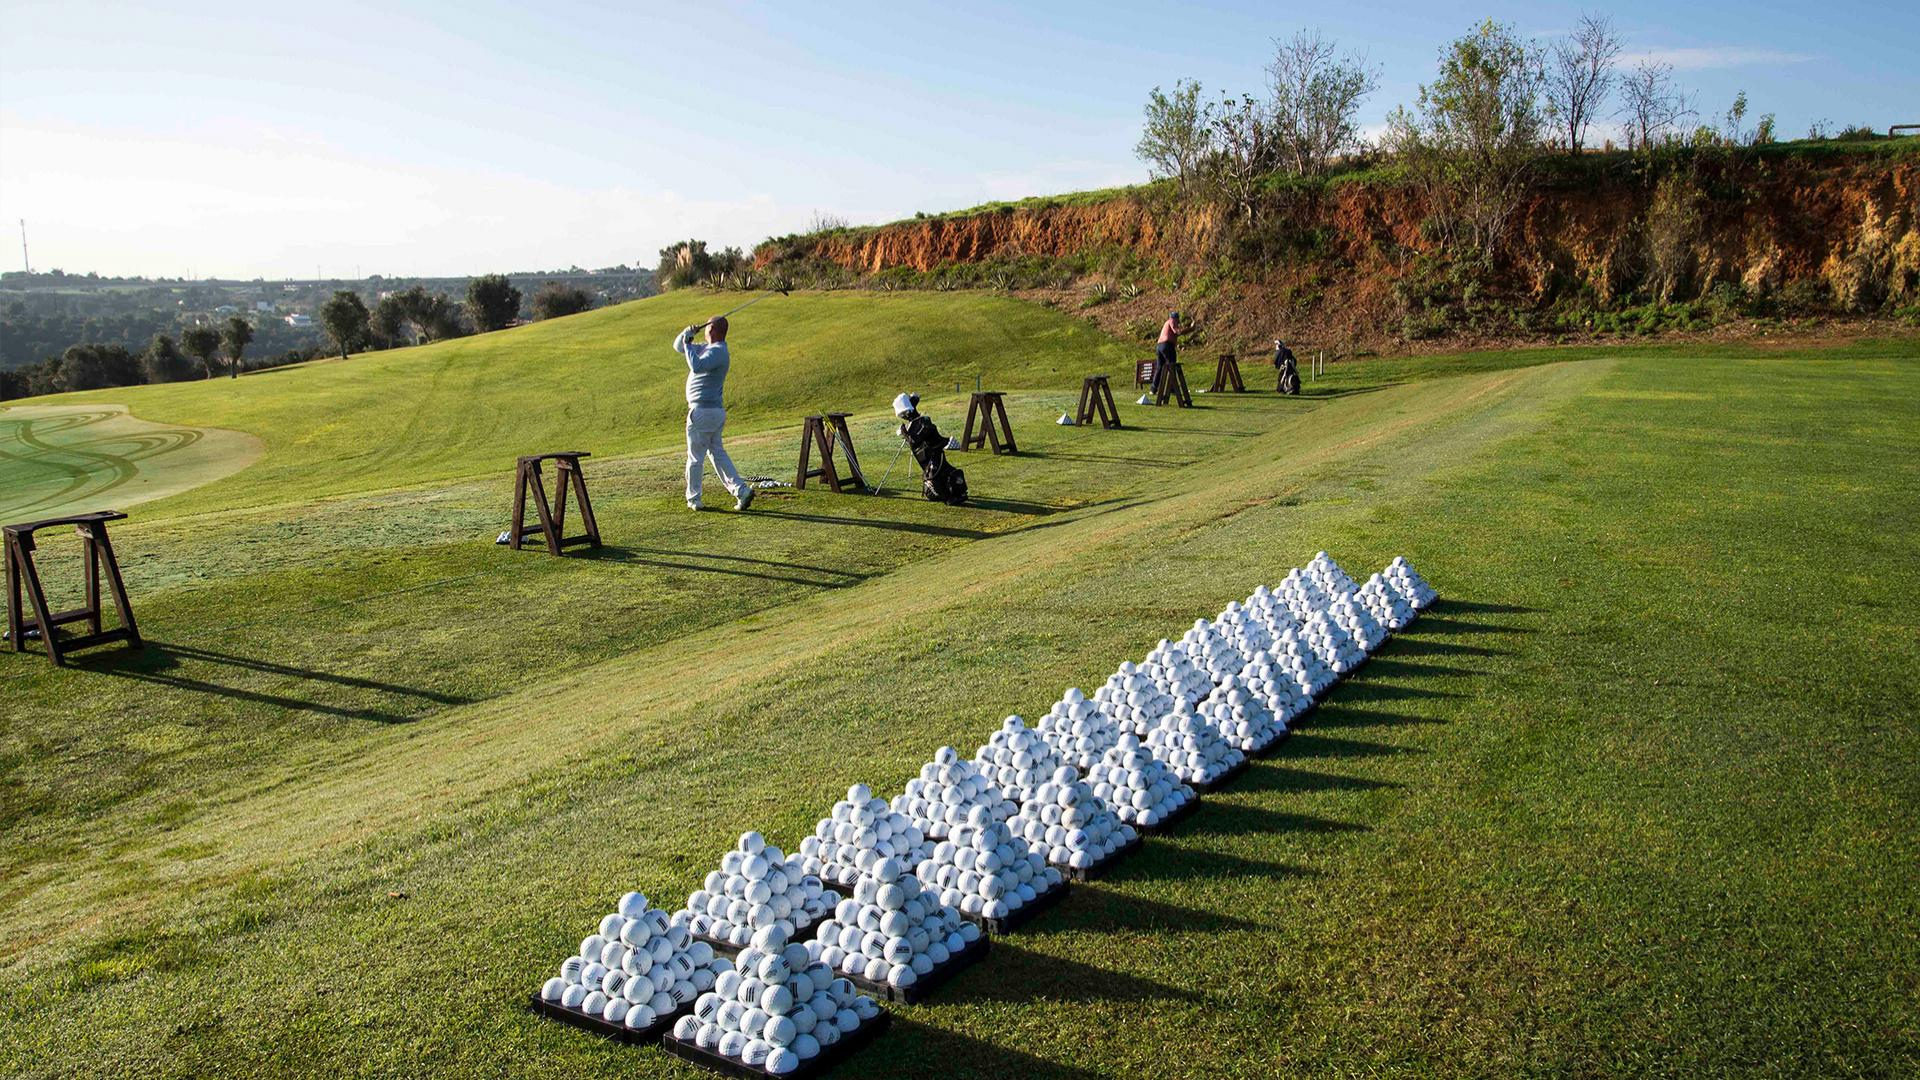 Play golf in the future, in the Algarve!